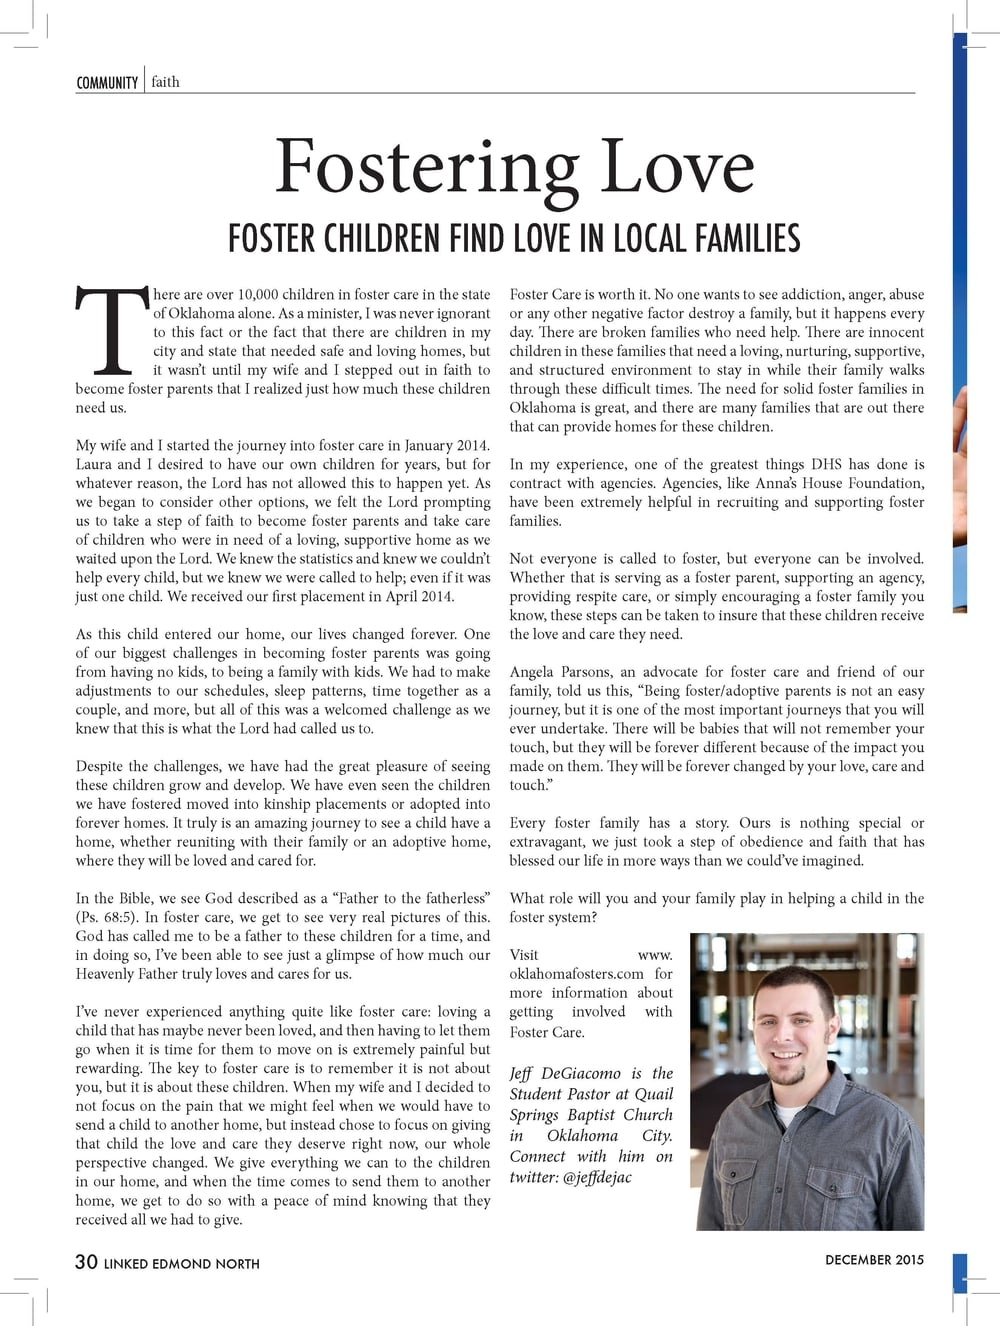 "Fostering Love  FOSTER CHILDREN FIND LOVE IN LOCAL FAMILIES  There are over 10,000 children in foster care in the state  of Oklahoma alone. As a minister, I was never ignorant  to this fact or the fact that there are children in my  city and state that needed safe and loving homes, but  it wasn't until my wife and I stepped out in faith to  become foster parents that I realized just how much these children  need us.  My wife and I started the journey into foster care in January 2014.  Laura and I desired to have our own children for years, but for  whatever reason, the Lord has not allowed this to happen yet. As  we began to consider other options, we felt the Lord prompting  us to take a step of faith to become foster parents and take care  of children who were in need of a loving, supportive home as we  waited upon the Lord. We knew the statistics and knew we couldn't  help every child, but we knew we were called to help; even if it was  just one child. We received our first placement in April 2014.  As this child entered our home, our lives changed forever. One  of our biggest challenges in becoming foster parents was going  from having no kids, to being a family with kids. We had to make  adjustments to our schedules, sleep patterns, time together as a  couple, and more, but all of this was a welcomed challenge as we  knew that this is what the Lord had called us to.  Despite the challenges, we have had the great pleasure of seeing  these children grow and develop. We have even seen the children  we have fostered moved into kinship placements or adopted into  forever homes. It truly is an amazing journey to see a child have a  home, whether reuniting with their family or an adoptive home,  where they will be loved and cared for.  In the Bible, we see God described as a ""Father to the fatherless""  (Ps. 68:5). In foster care, we get to see very real pictures of this.  God has called me to be a father to these children for a time, and  in doing so, I've been able to see just a glimpse of how much our  Heavenly Father truly loves and cares for us.  I've never experienced anything quite like foster care: loving a  child that has maybe never been loved, and then having to let them  go when it is time for them to move on is extremely painful but  rewarding. The key to foster care is to remember it is not about  you, but it is about these children. When my wife and I decided to  not focus on the pain that we might feel when we would have to  send a child to another home, but instead chose to focus on giving  that child the love and care they deserve right now, our whole  perspective changed. We give everything we can to the children  in our home, and when the time comes to send them to another  home, we get to do so with a peace of mind knowing that they  received all we had to give.  Foster Care is worth it. No one wants to see addiction, anger, abuse  or any other negative factor destroy a family, but it happens every  day. There are broken families who need help. There are innocent  children in these families that need a loving, nurturing, supportive,  and structured environment to stay in while their family walks  through these difficult times. The need for solid foster families in  Oklahoma is great, and there are many families that are out there  that can provide homes for these children.  In my experience, one of the greatest things DHS has done is  contract with agencies. Agencies, like Anna's House Foundation,  have been extremely helpful in recruiting and supporting foster  families.  Not everyone is called to foster, but everyone can be involved.  Whether that is serving as a foster parent, supporting an agency,  providing respite care, or simply encouraging a foster family you  know, these steps can be taken to insure that these children receive  the love and care they need.  Angela Parsons, an advocate for foster care and friend of our  family, told us this, ""Being foster/adoptive parents is not an easy  journey, but it is one of the most important journeys that you will  ever undertake. There will be babies that will not remember your  touch, but they will be forever different because of the impact you  made on them. They will be forever changed by your love, care and  touch.""  Every foster family has a story. Ours is nothing special or  extravagant, we just took a step of obedience and faith that has  blessed our life in more ways than we could've imagined.  What role will you and your family play in helping a child in the  foster system?  Visit www.  oklahomafosters.com for  more information about  getting involved with  Foster Care.  Jeff DeGiacomo is the  Student Pastor at Quail  Springs Baptist Church  in Oklahoma City.  Connect with him on  twitter: @jeffdejac  COMMUNITYfaith"